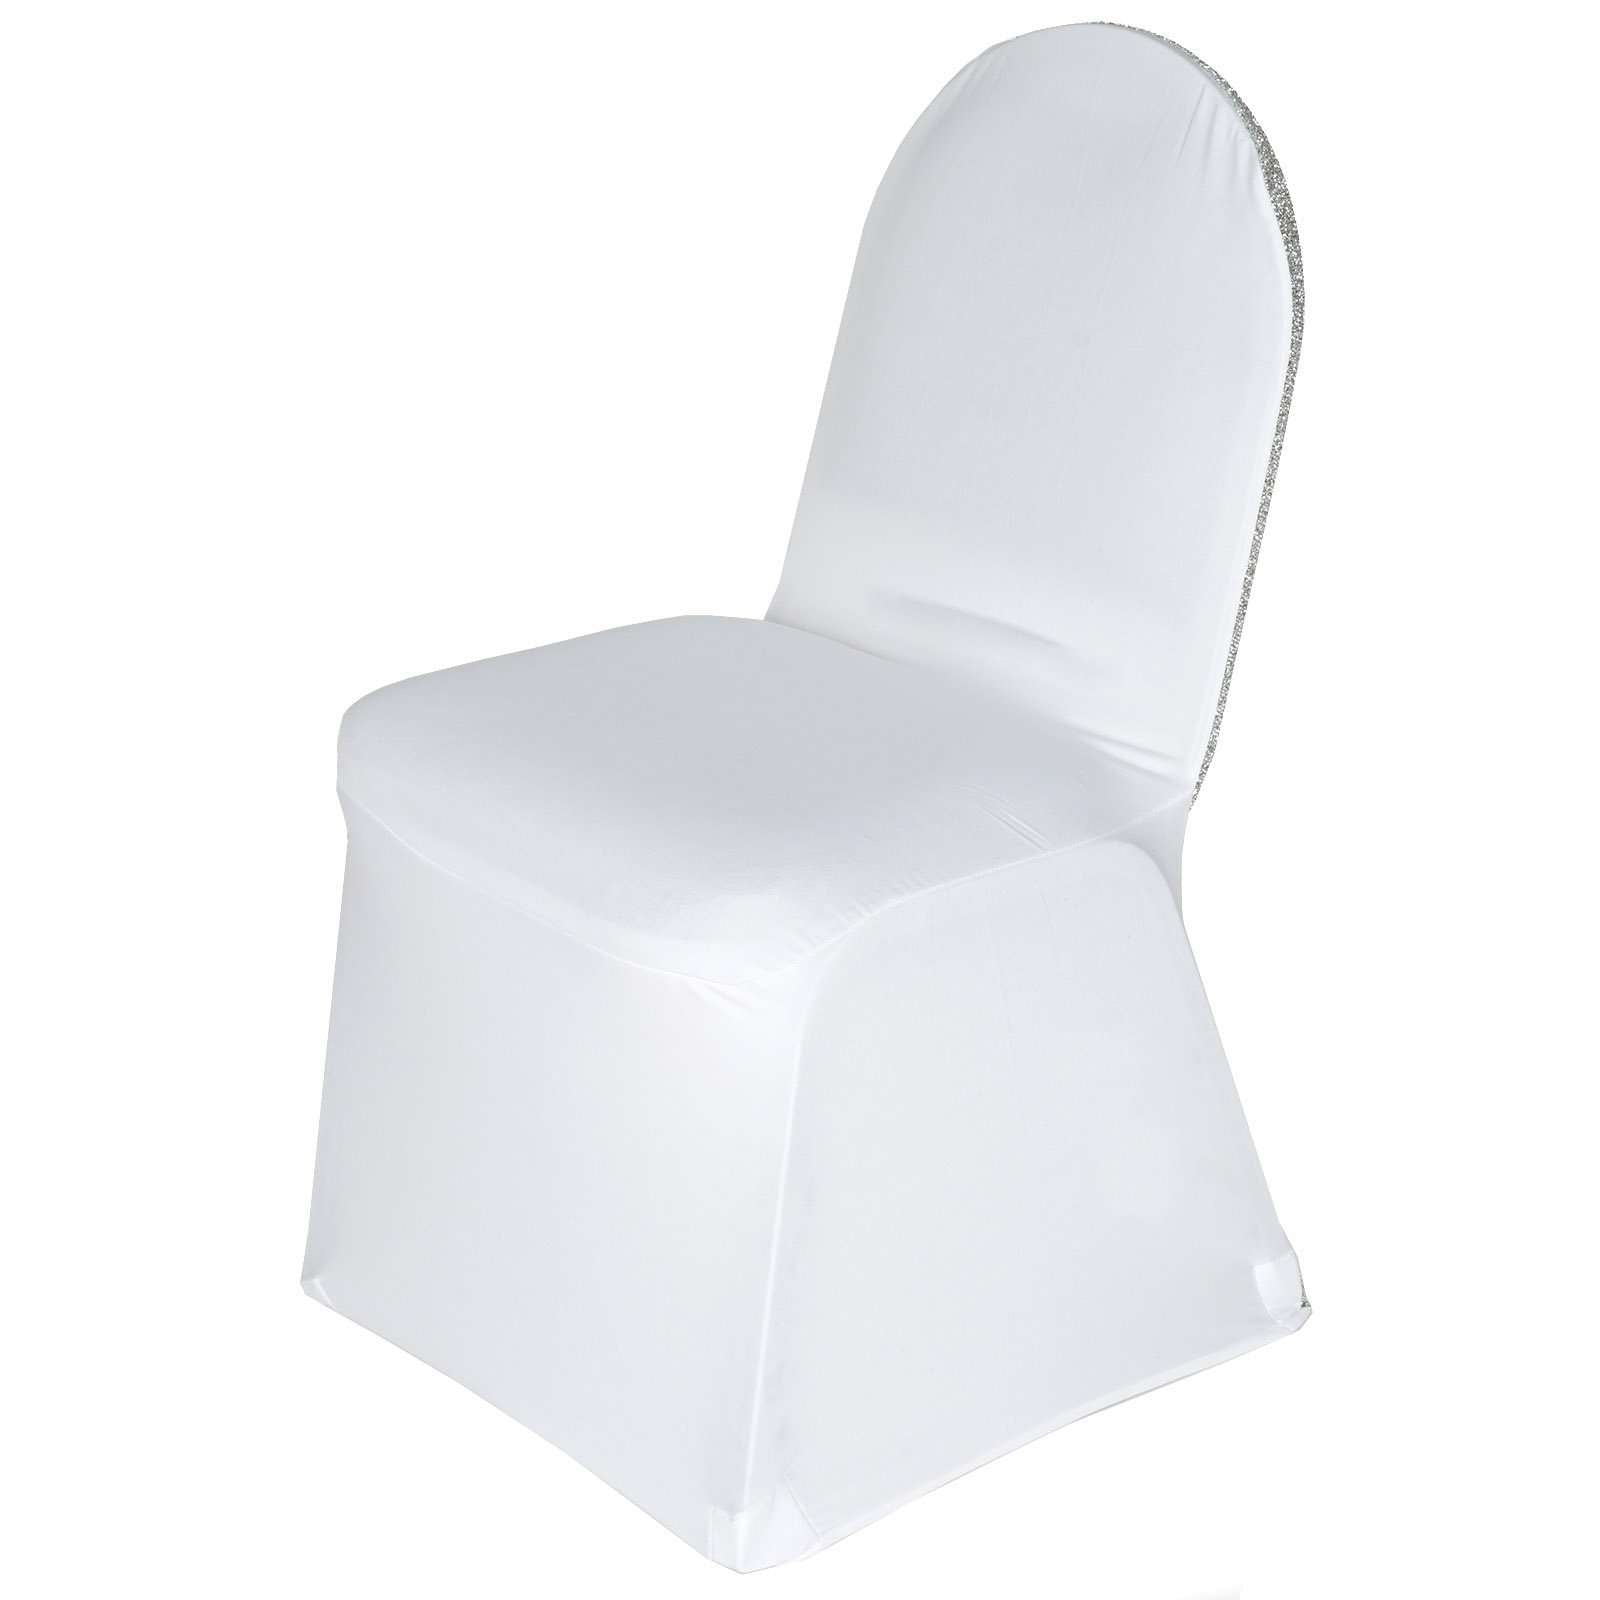 Magnificent White Spandex Stretch Banquet Chair Cover With Silver Beatyapartments Chair Design Images Beatyapartmentscom